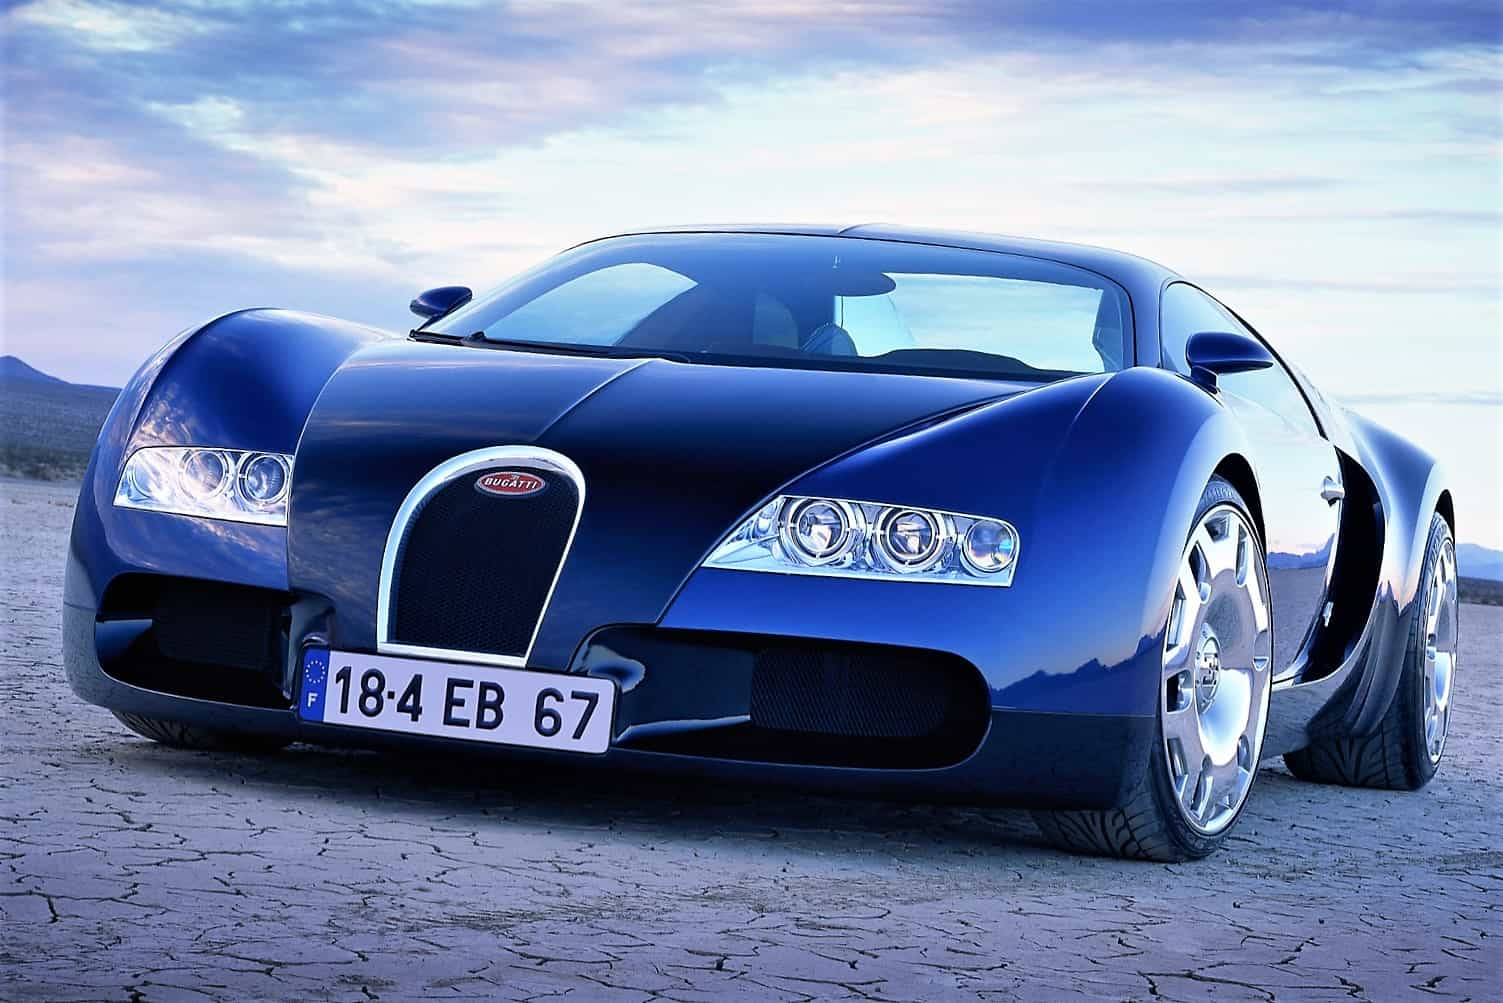 Bugatti Veyron Started Life As 18 Cylinder Sketch On An Envelope